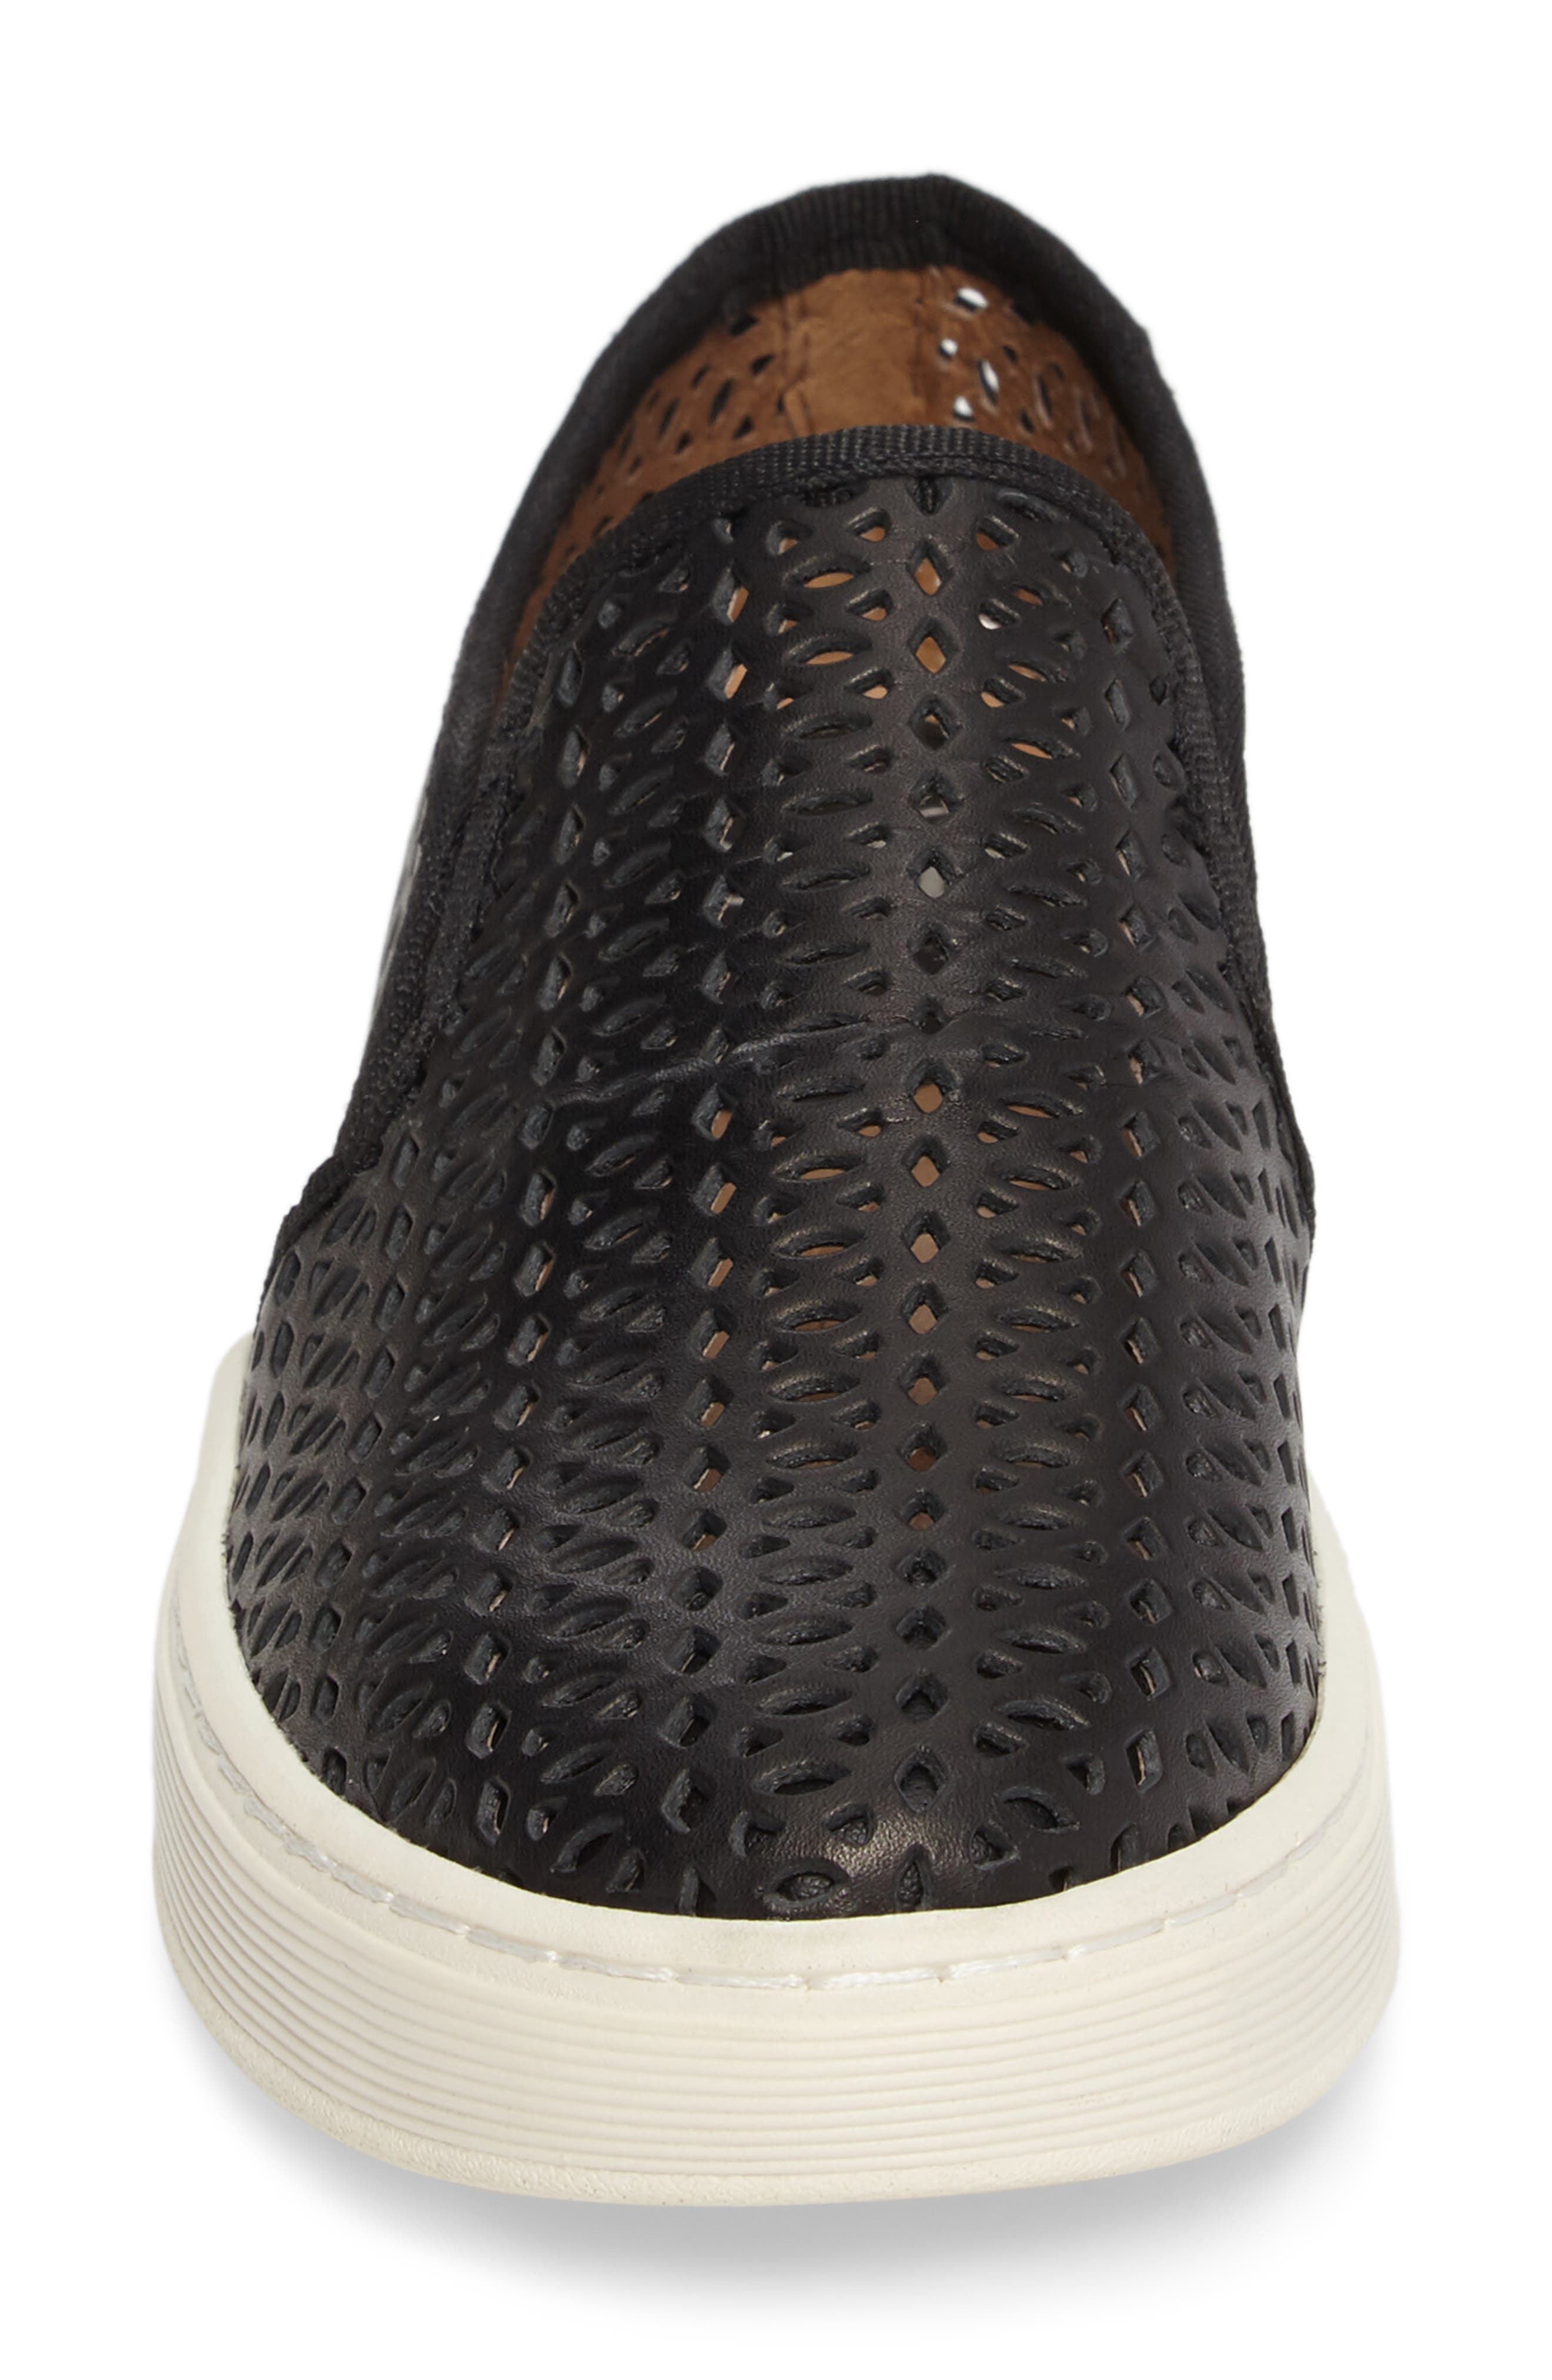 Somers II Slip-on Sneaker,                             Alternate thumbnail 4, color,                             Black Perforated Leather